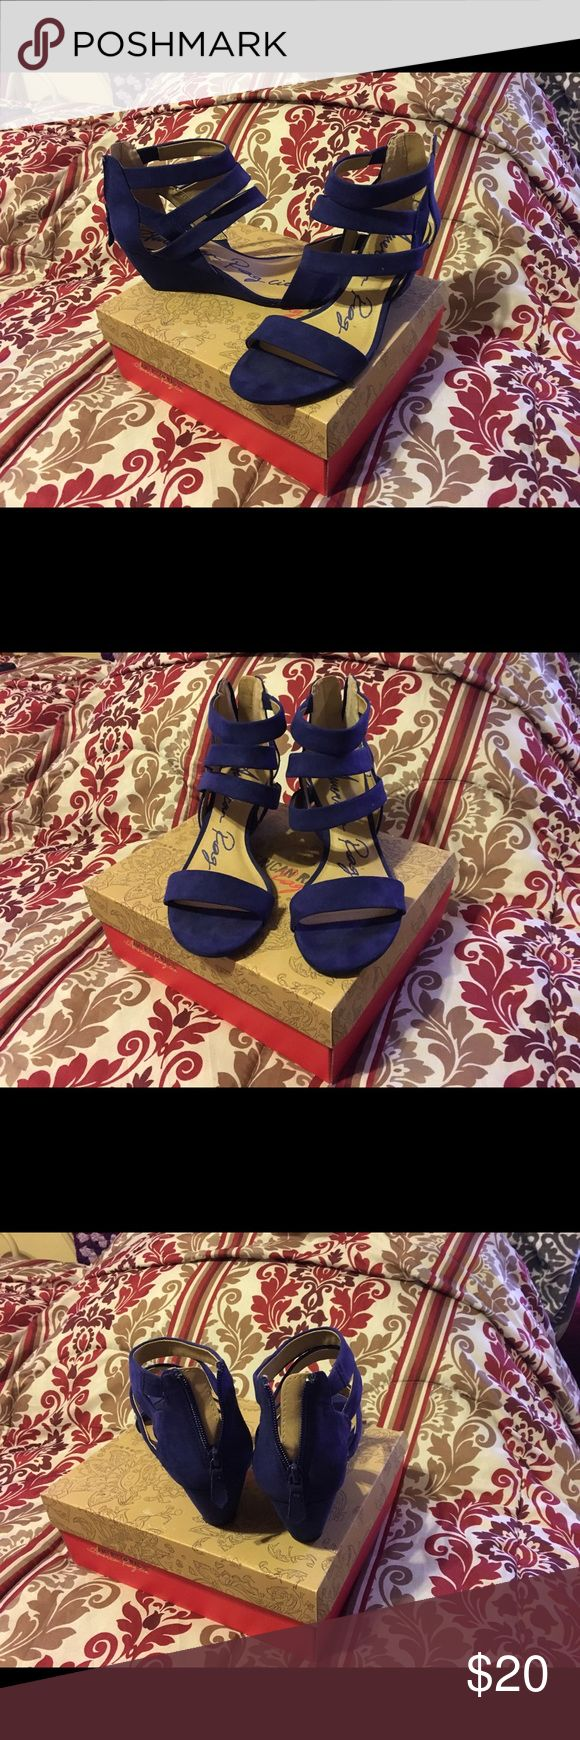 American rag blue suede sandals American Rag blue suede sandals. 2 inch wedges, zipper close, straps around ankle. Only worn a few times. Deep bluish purple color. American Rag Shoes Sandals